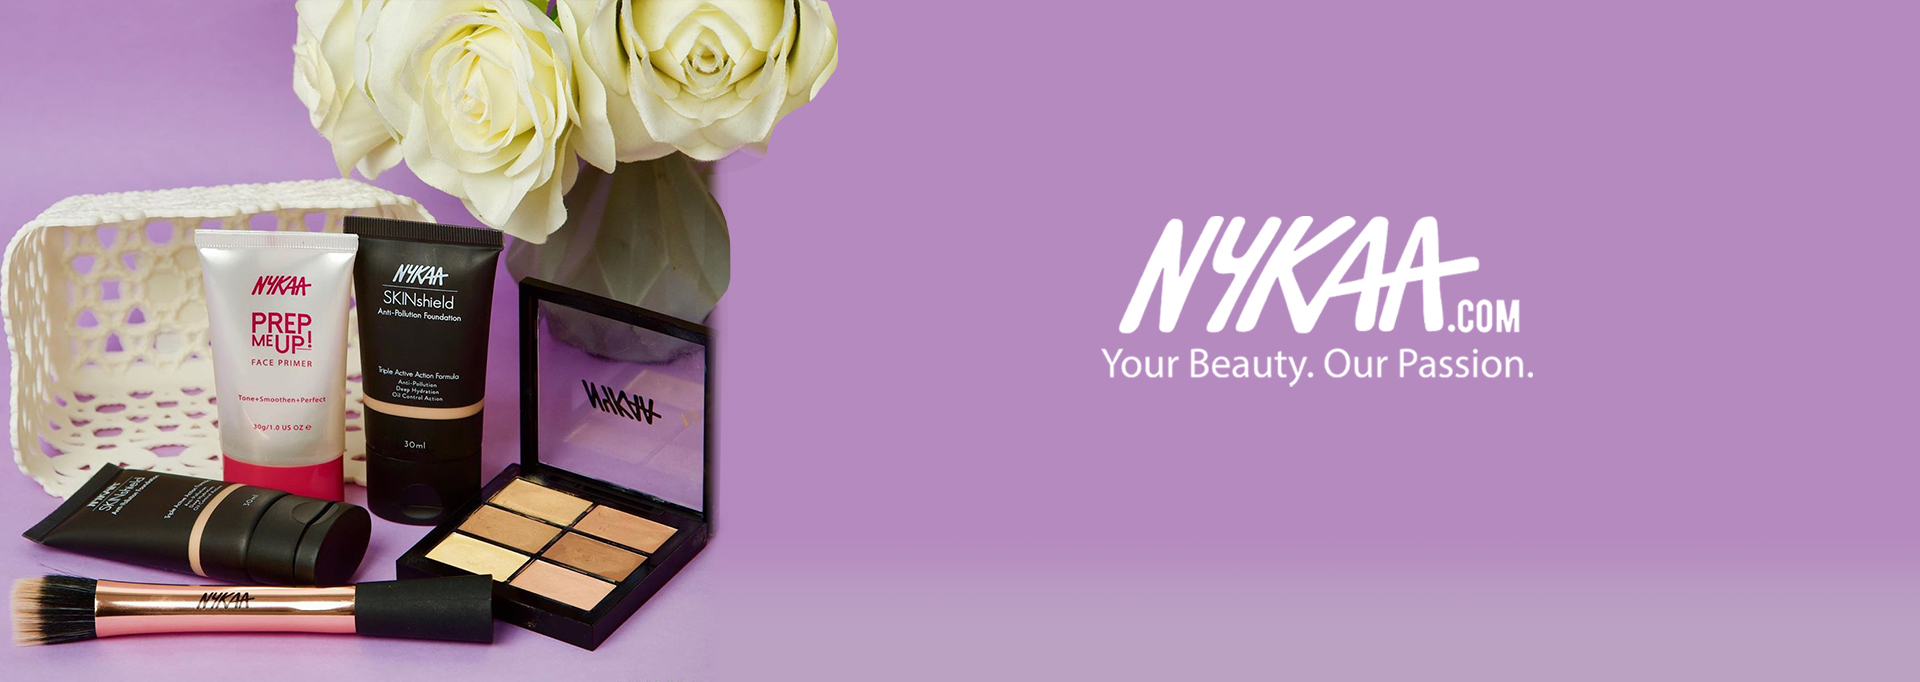 Image result for Nykaa.com